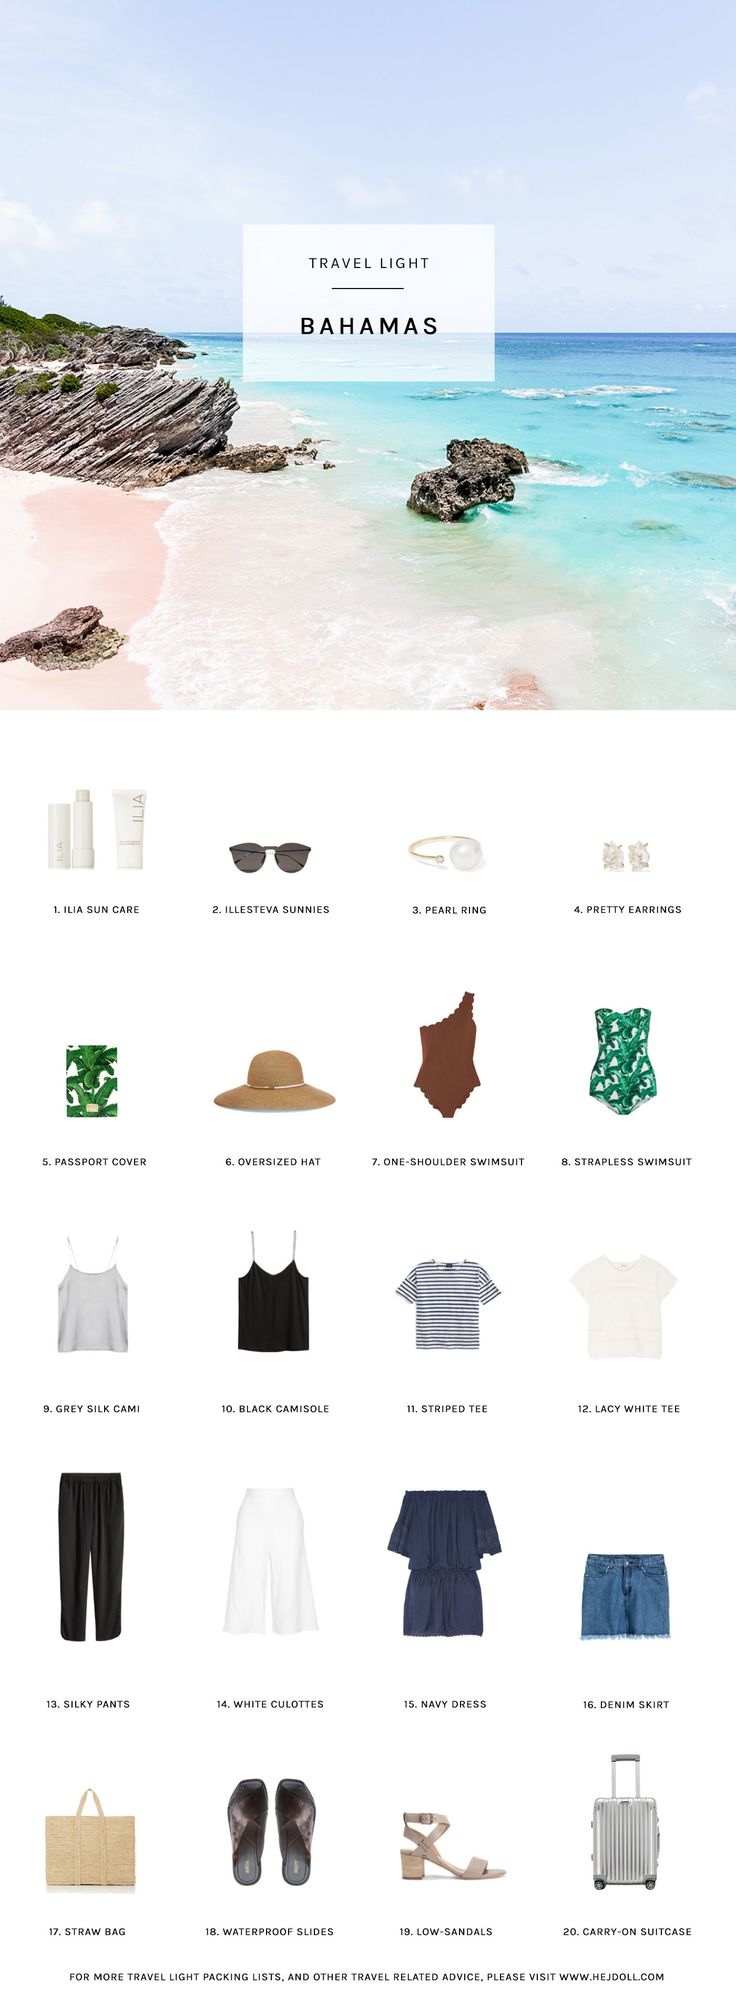 Pack for the Bahamas http://hejdoll.com/travel-light-pack-bahamas/?utm_campaign=coschedule&utm_source=pinterest&utm_medium=Jessica%20Doll&utm_content=Pack%20for%20the%20Bahamas